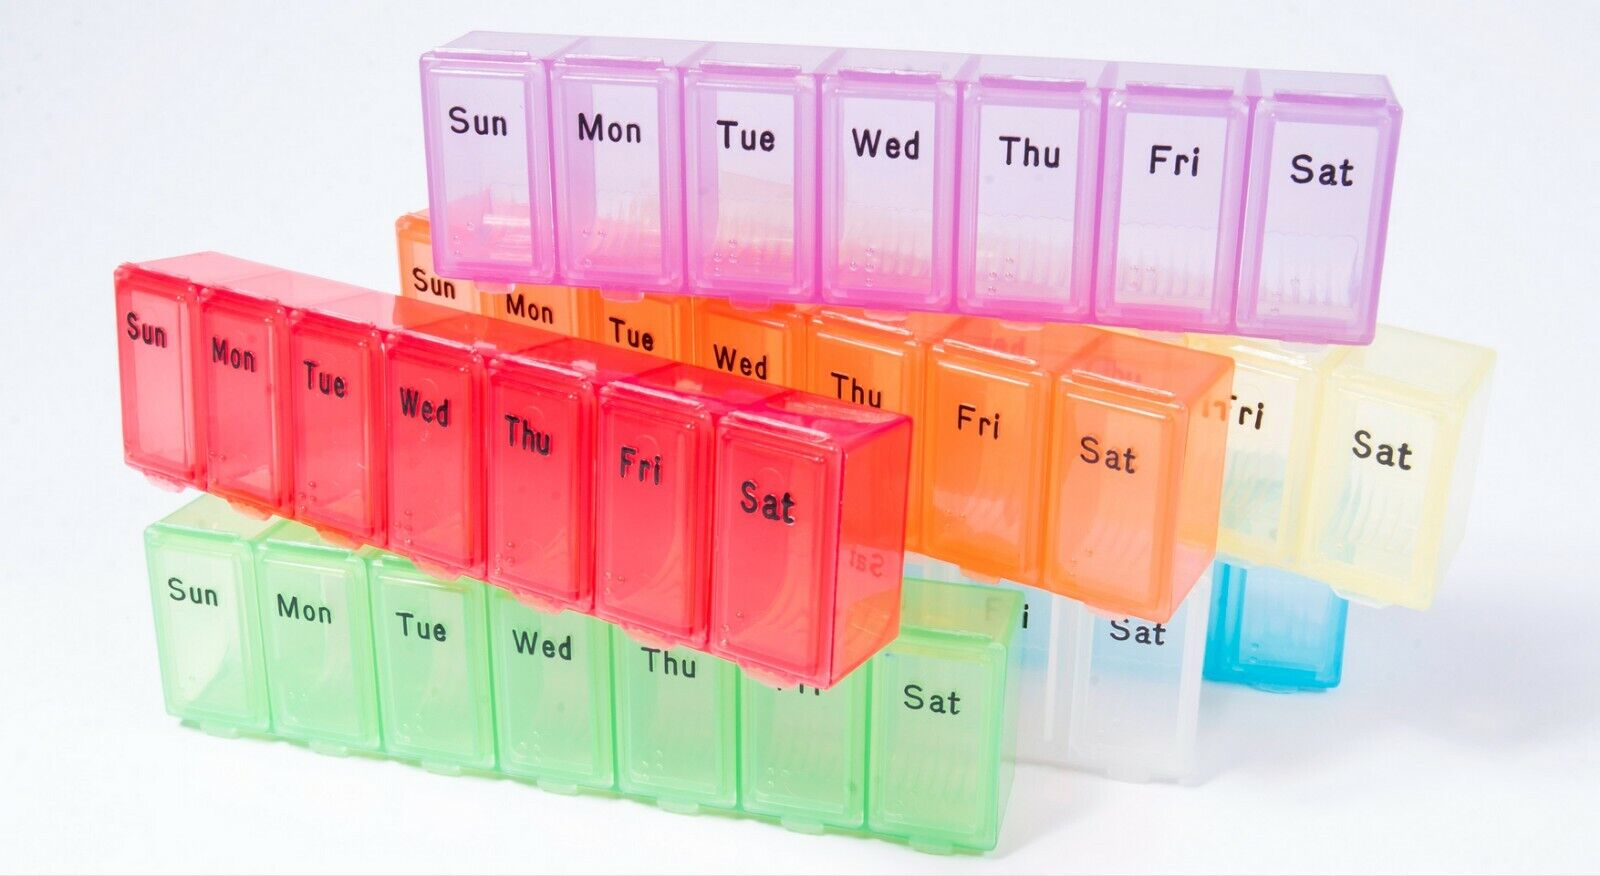 Small Weekly Pill Box - Item 325 IN PURPLE